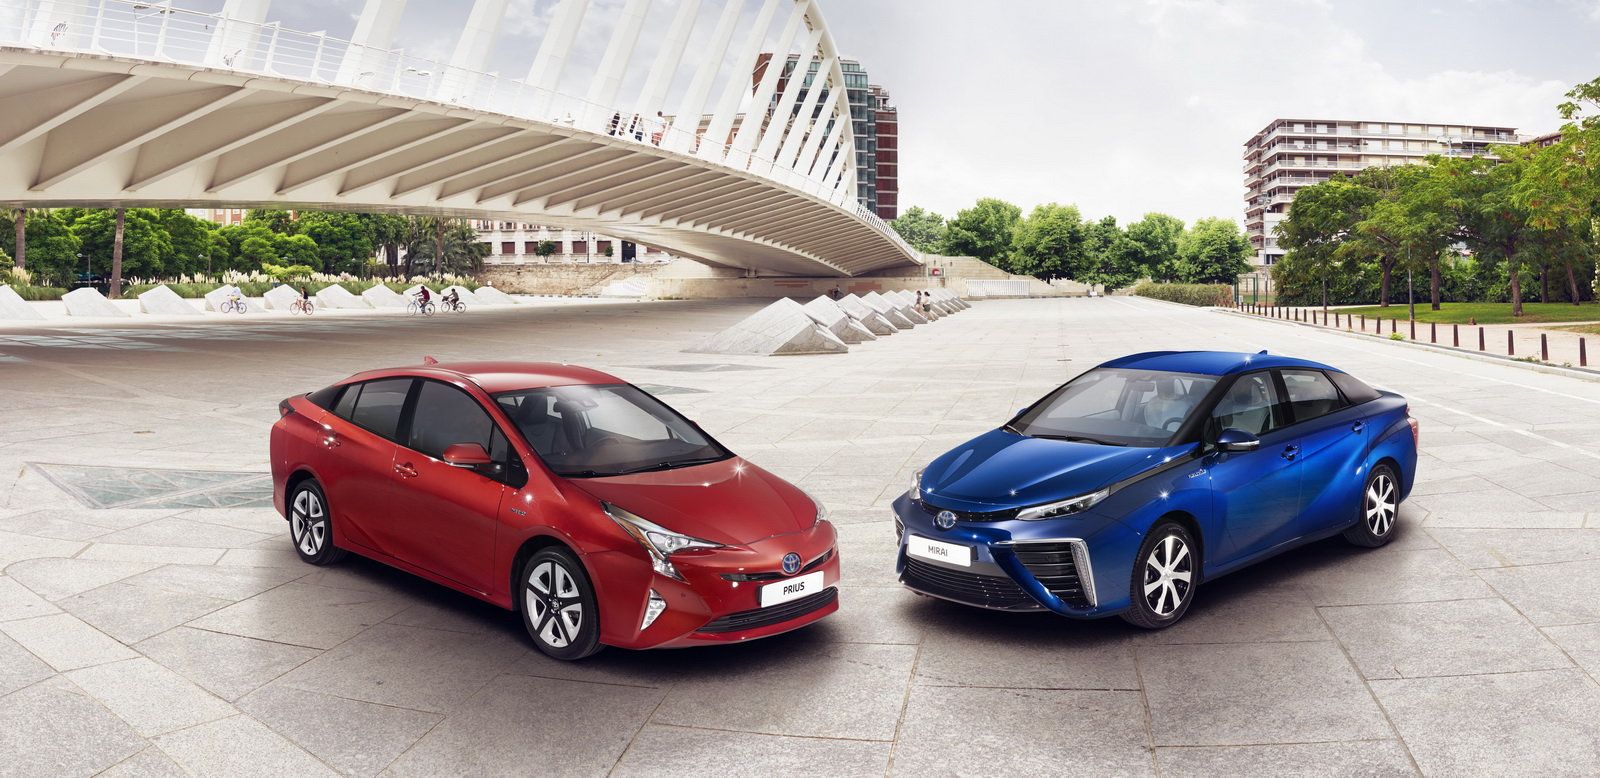 New toyota prius officially rated at 70g km of co2 emissions and 94 2mpg uk